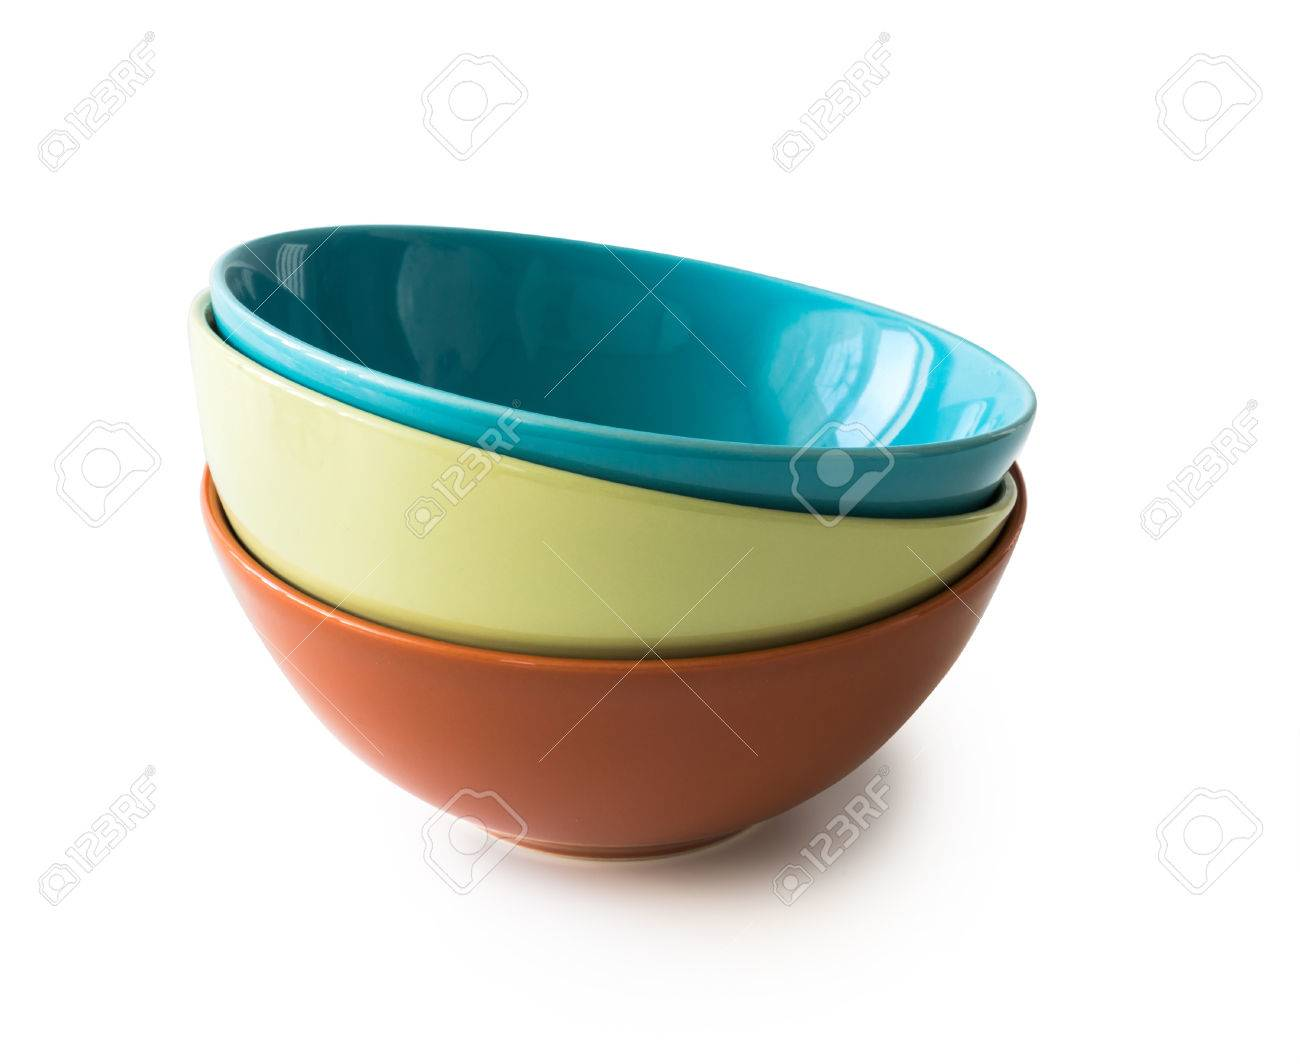 set of new colorful bowls isolated on white background - 48087826